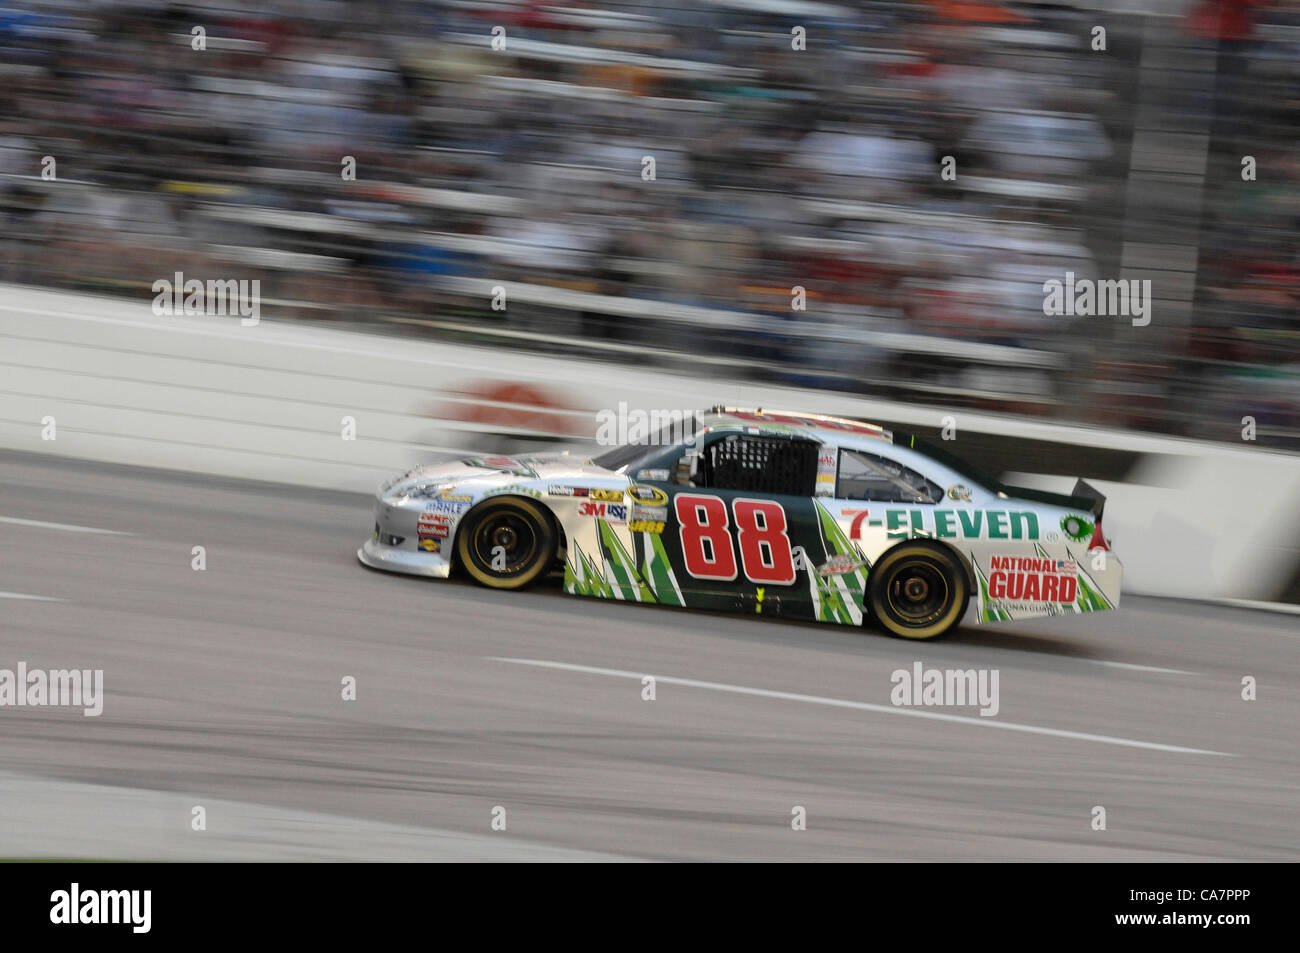 April 14, 2012 - Fort Worth, TX, USA - April 14, 2012 Ft. Worth, Tx. USA. Dale Earnhardt Jr. during the NASCAR Sprint Stock Photo